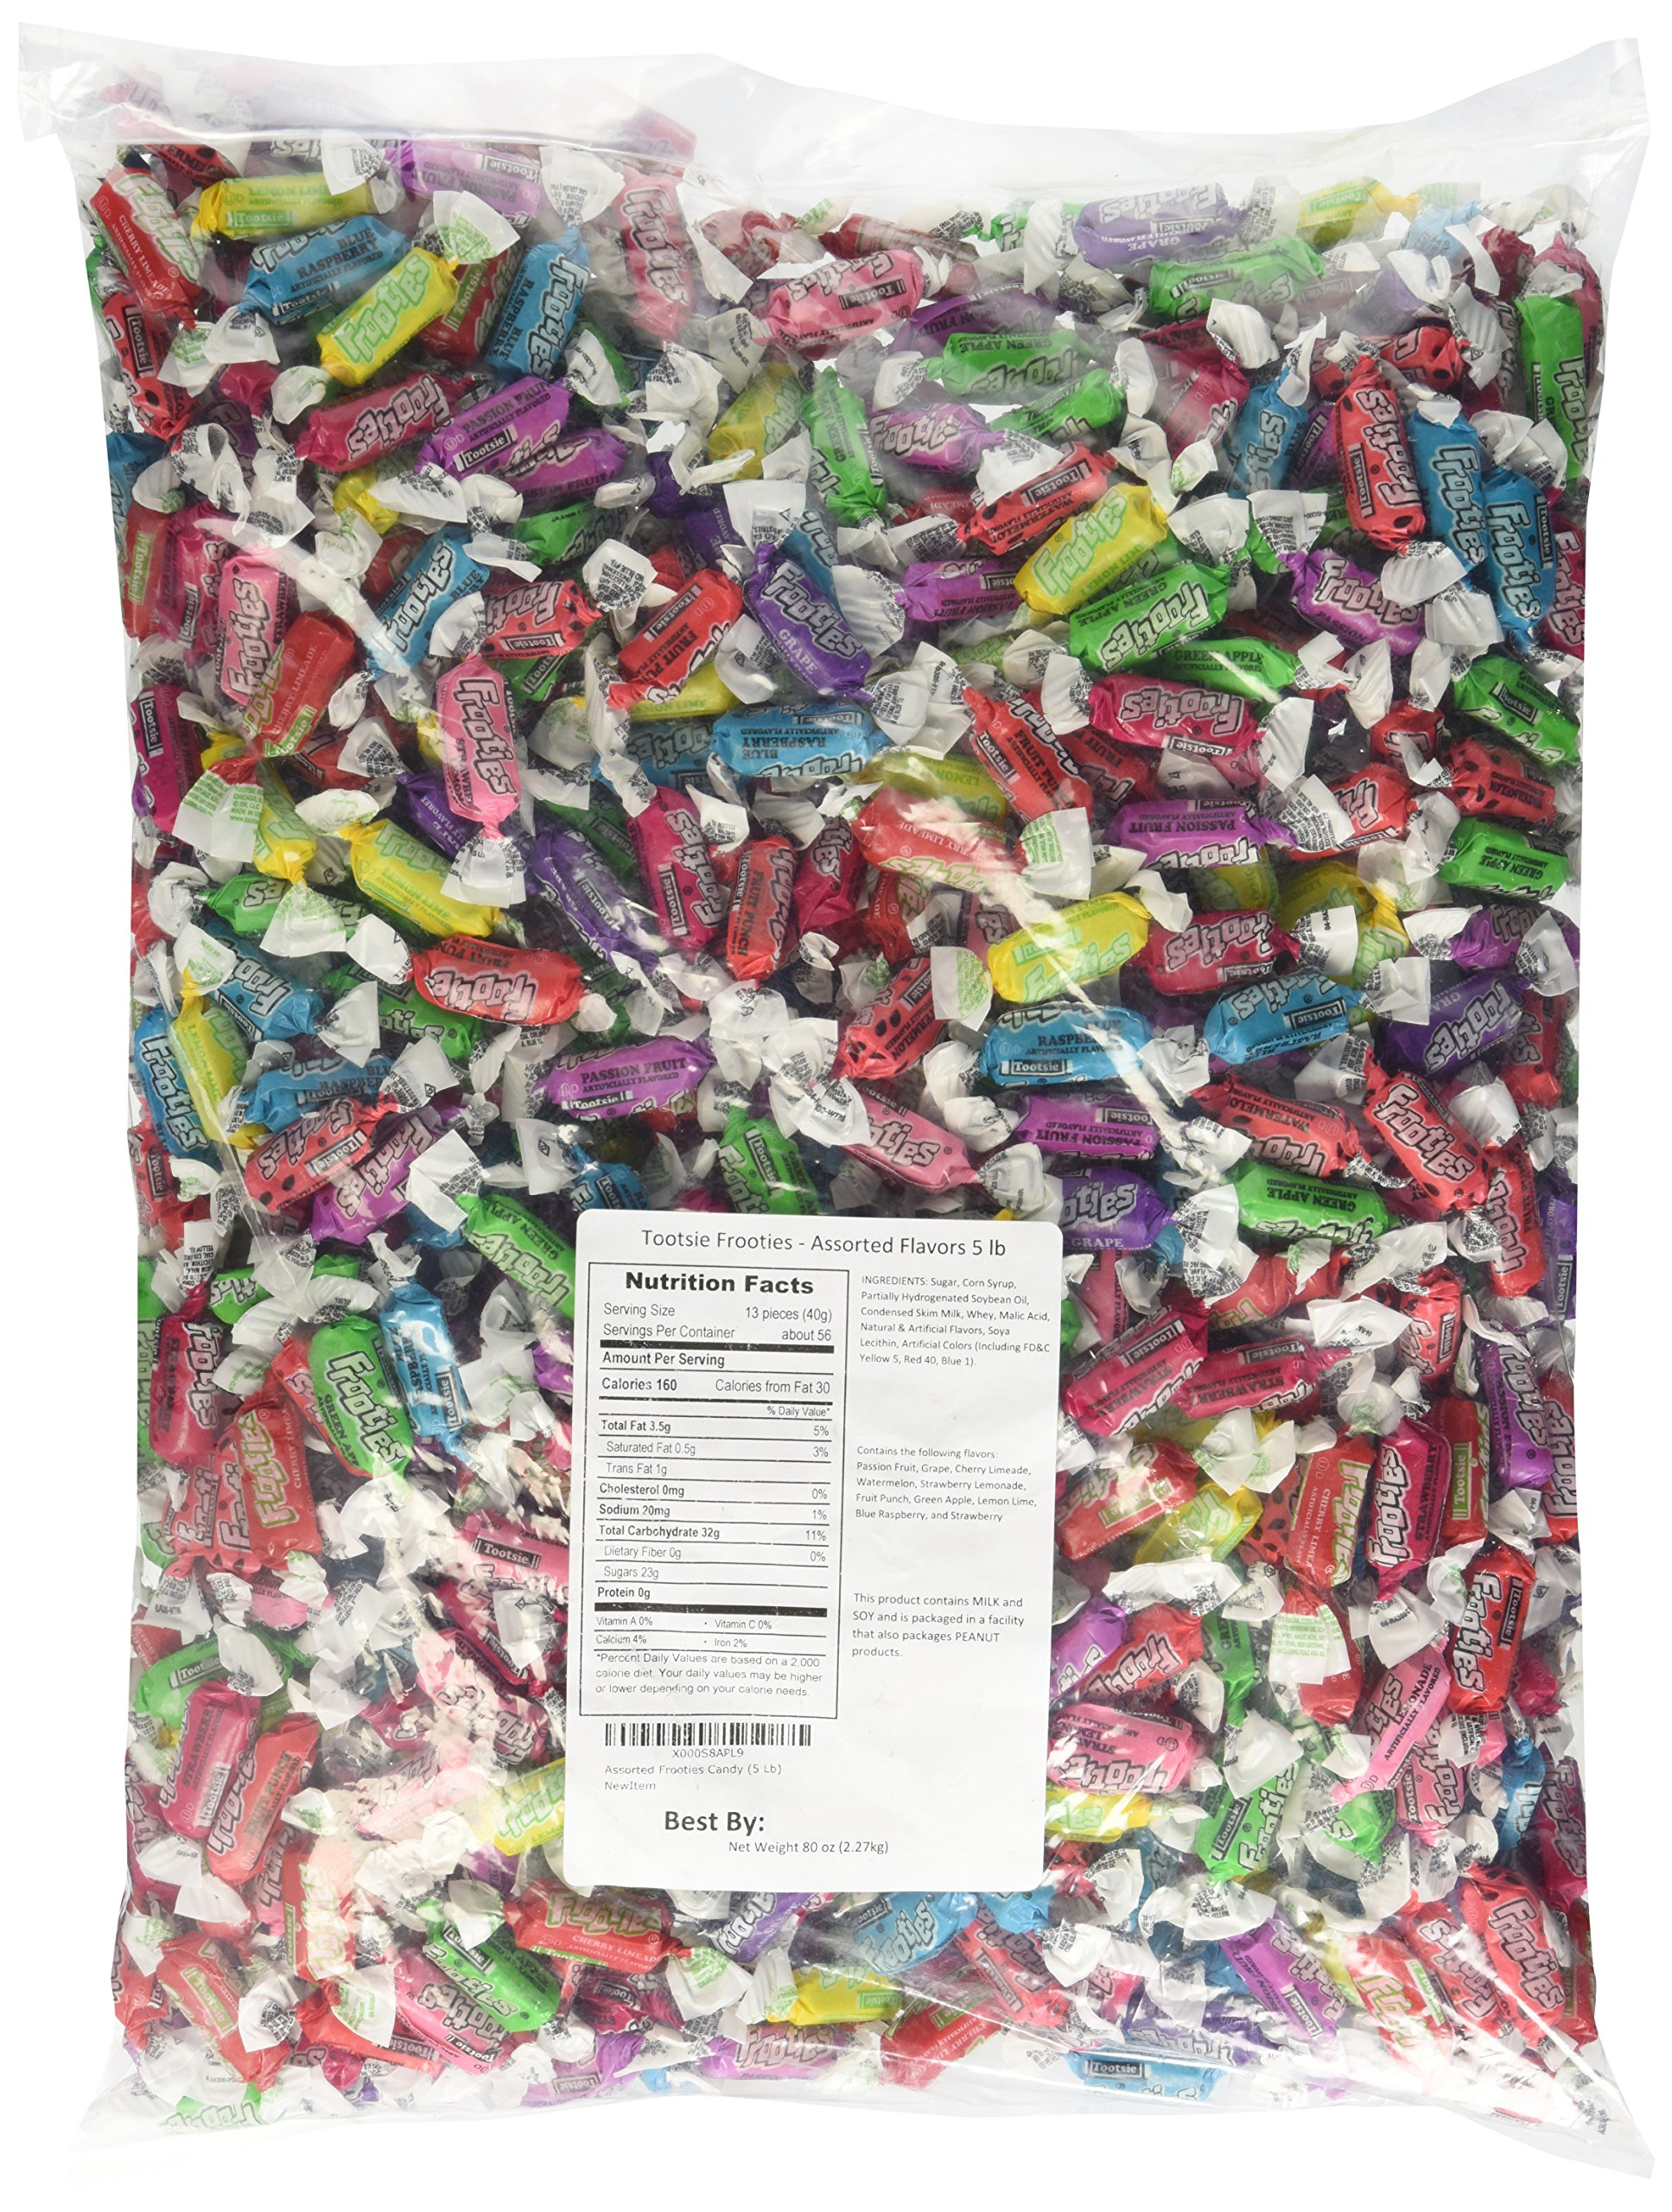 Tootsies frooties assorted 5lb (2.27kg) by Tootsie Roll